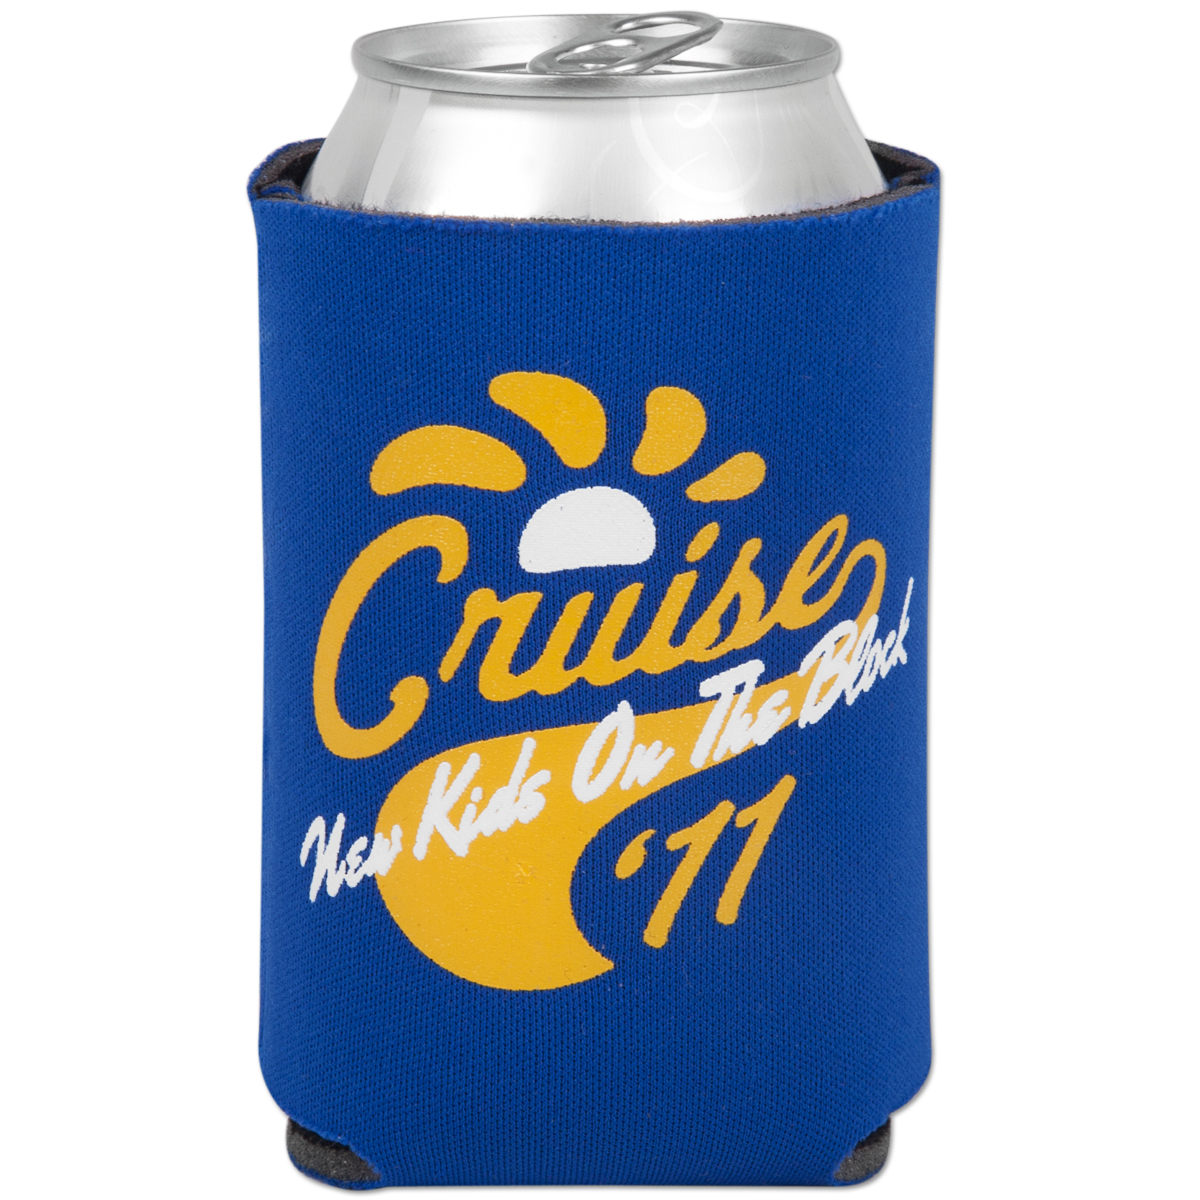 New Kids on the Block 2011 Cruise Sun Koozie